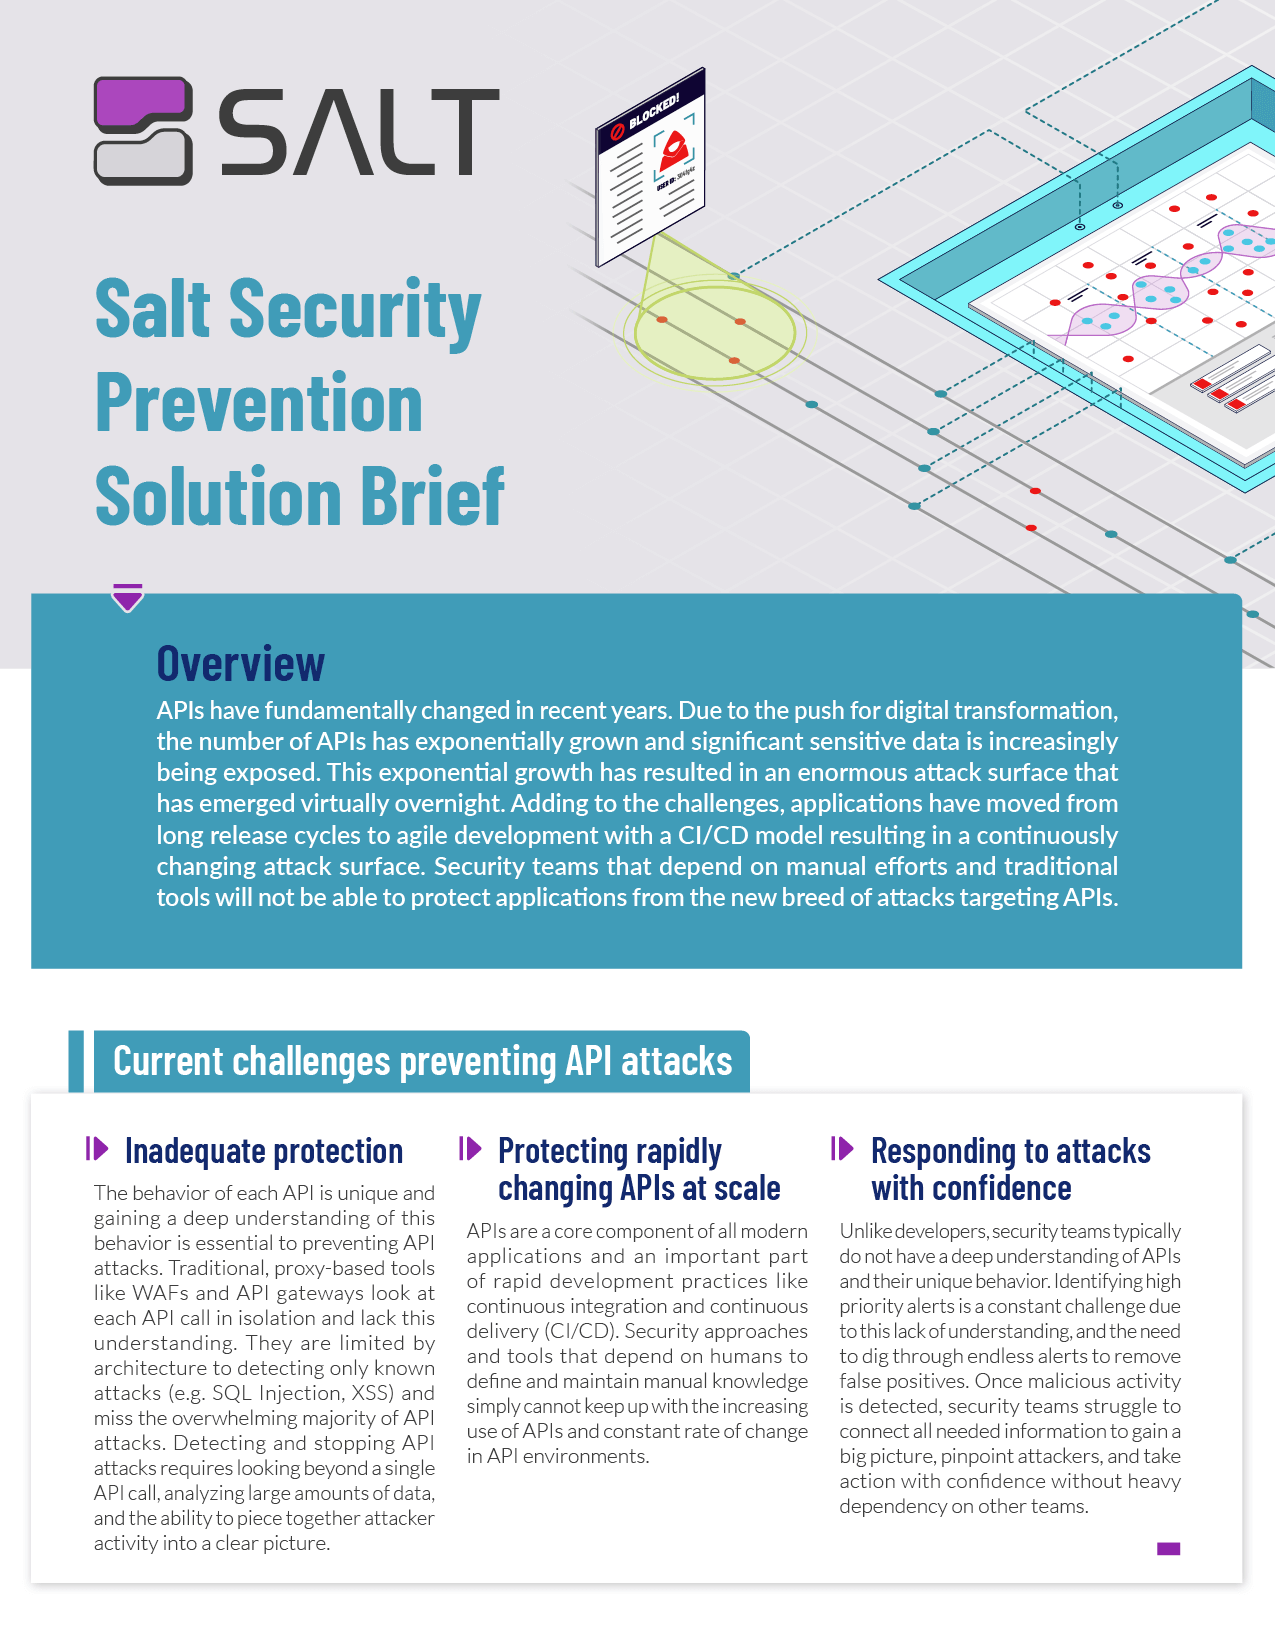 Prevention Solution Brief